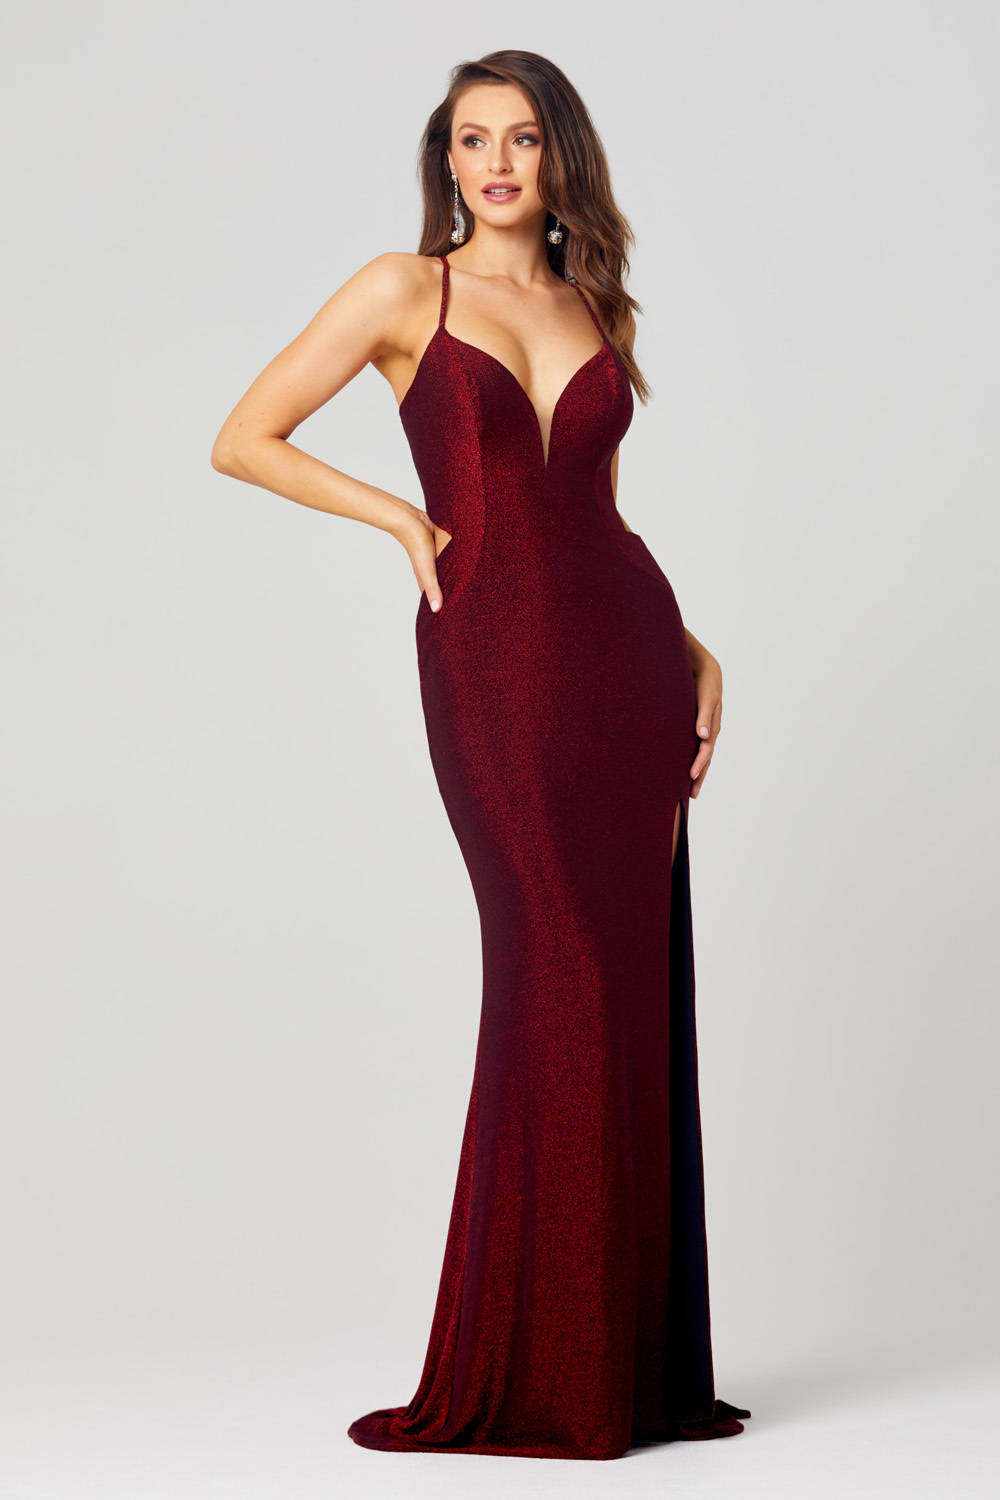 PO857 Maggie wine dress